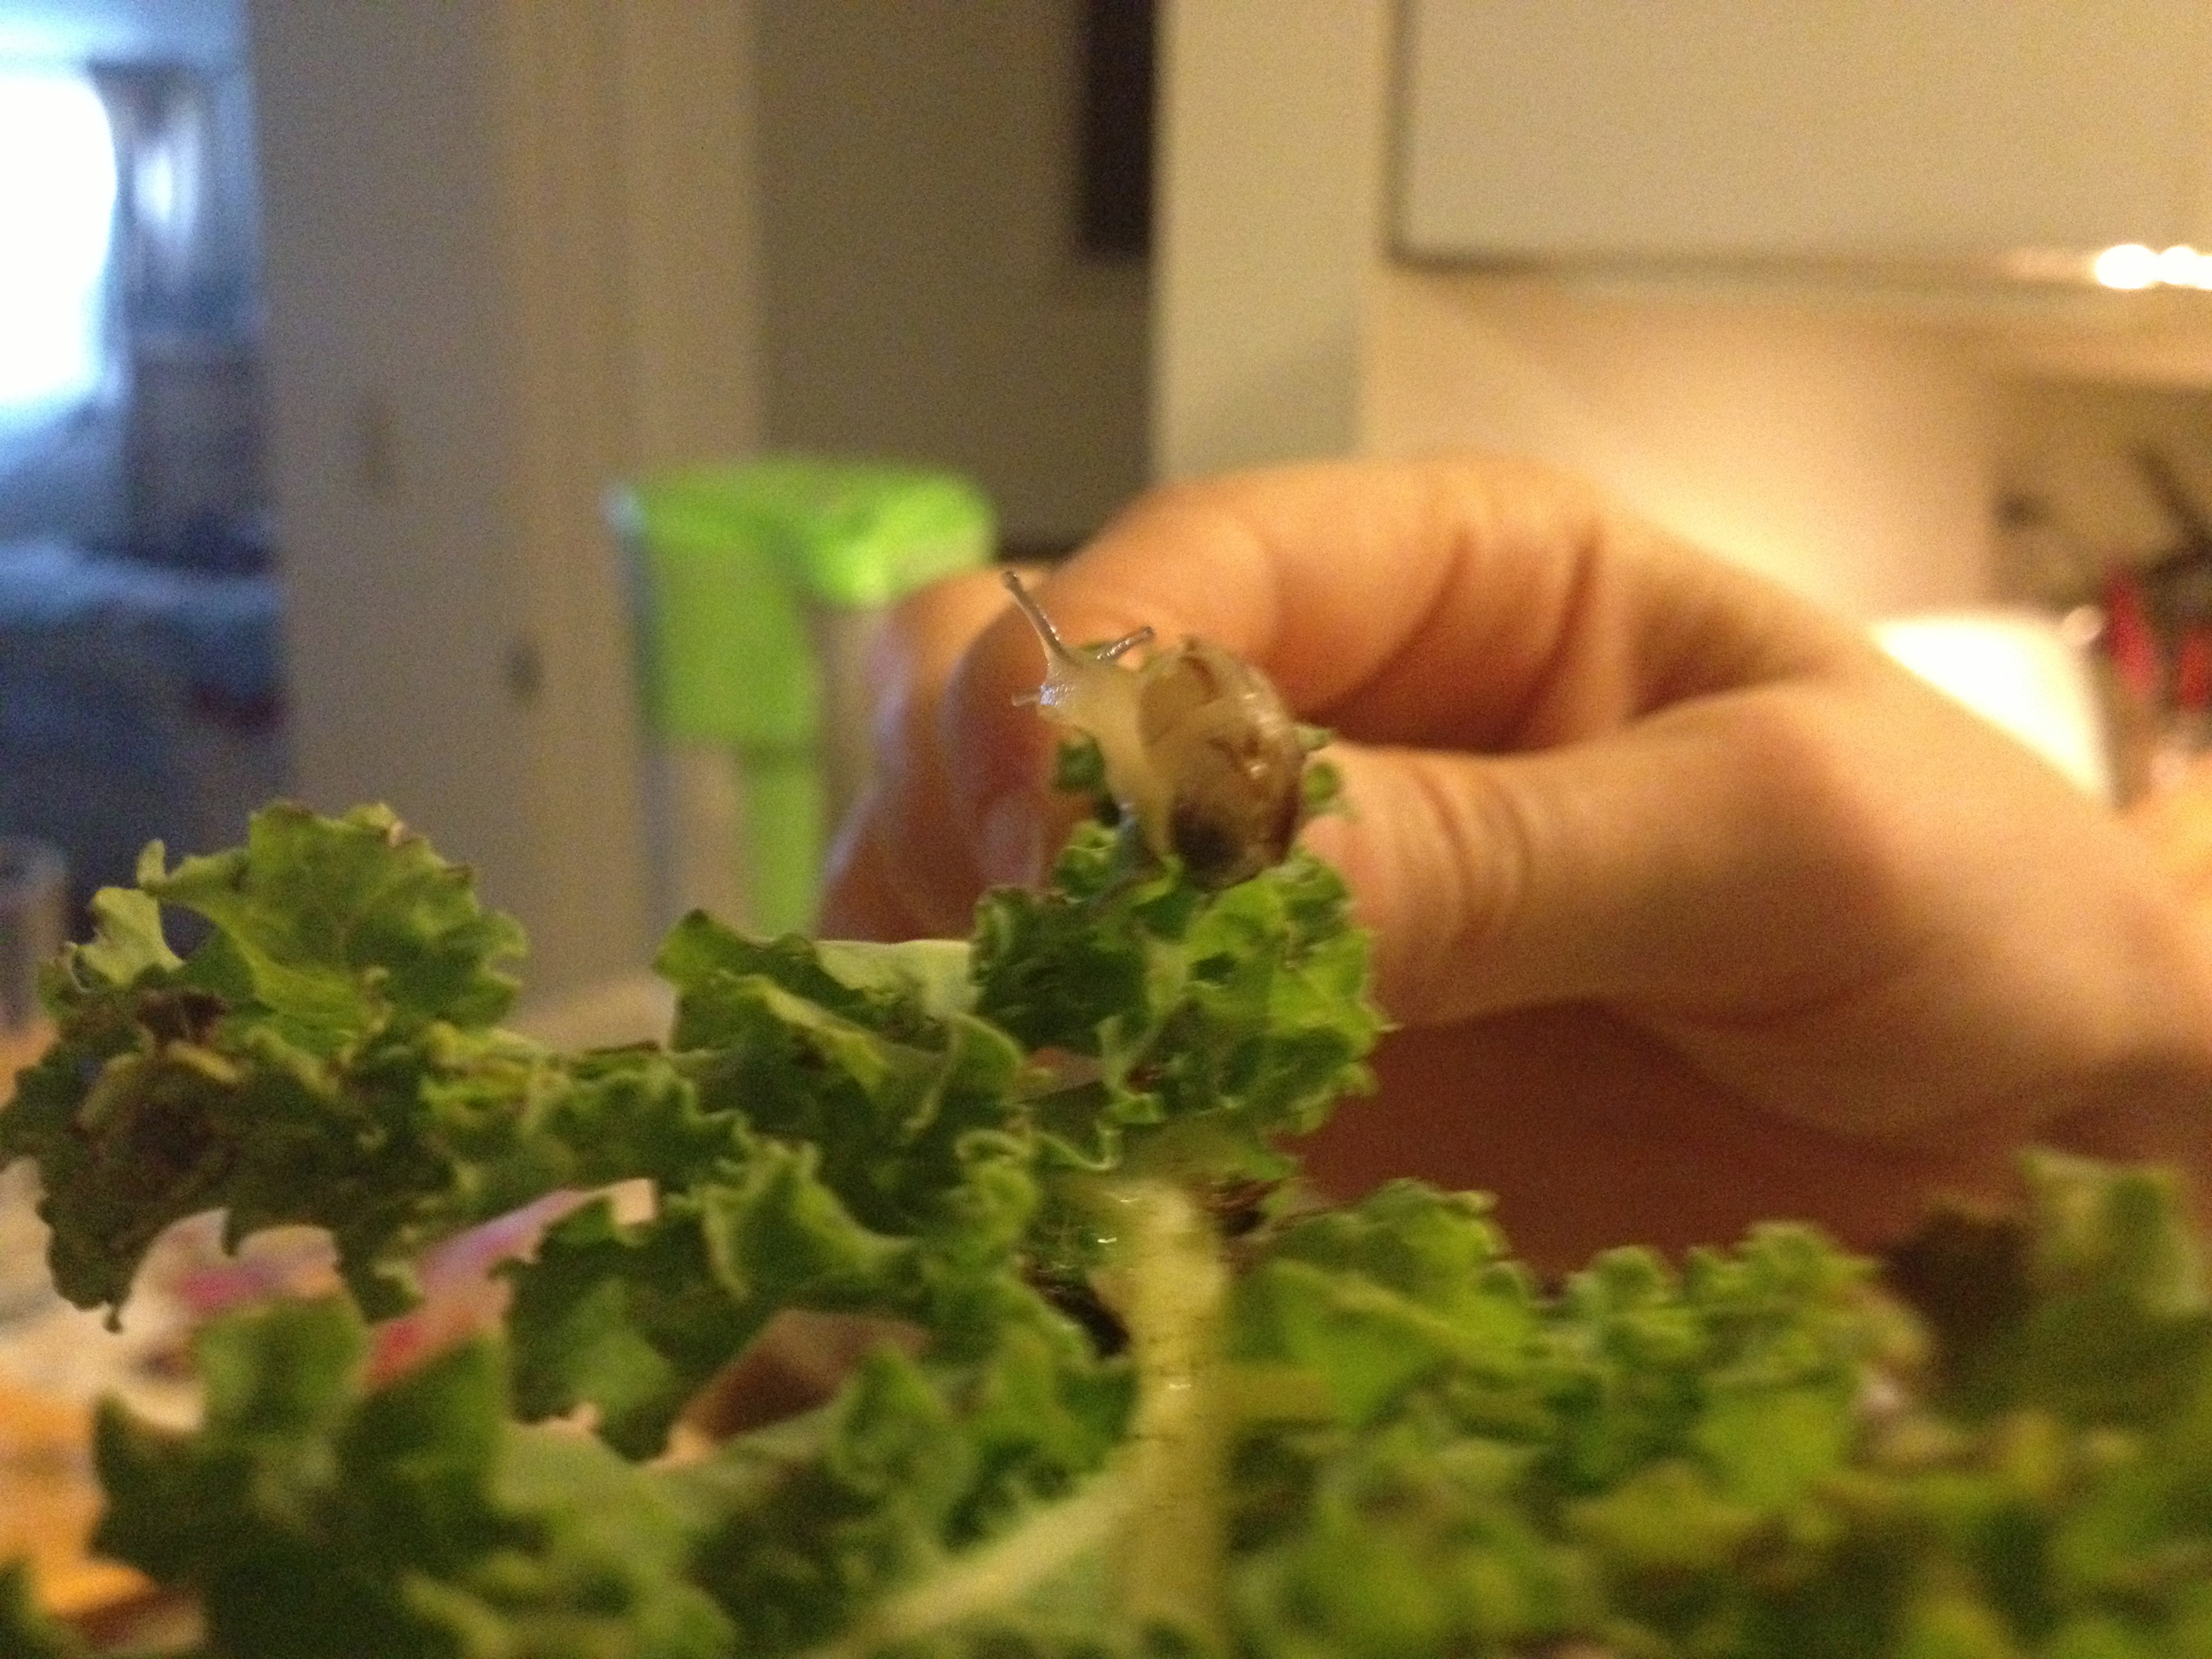 Kale in the kitchen, North Hollywood, CA